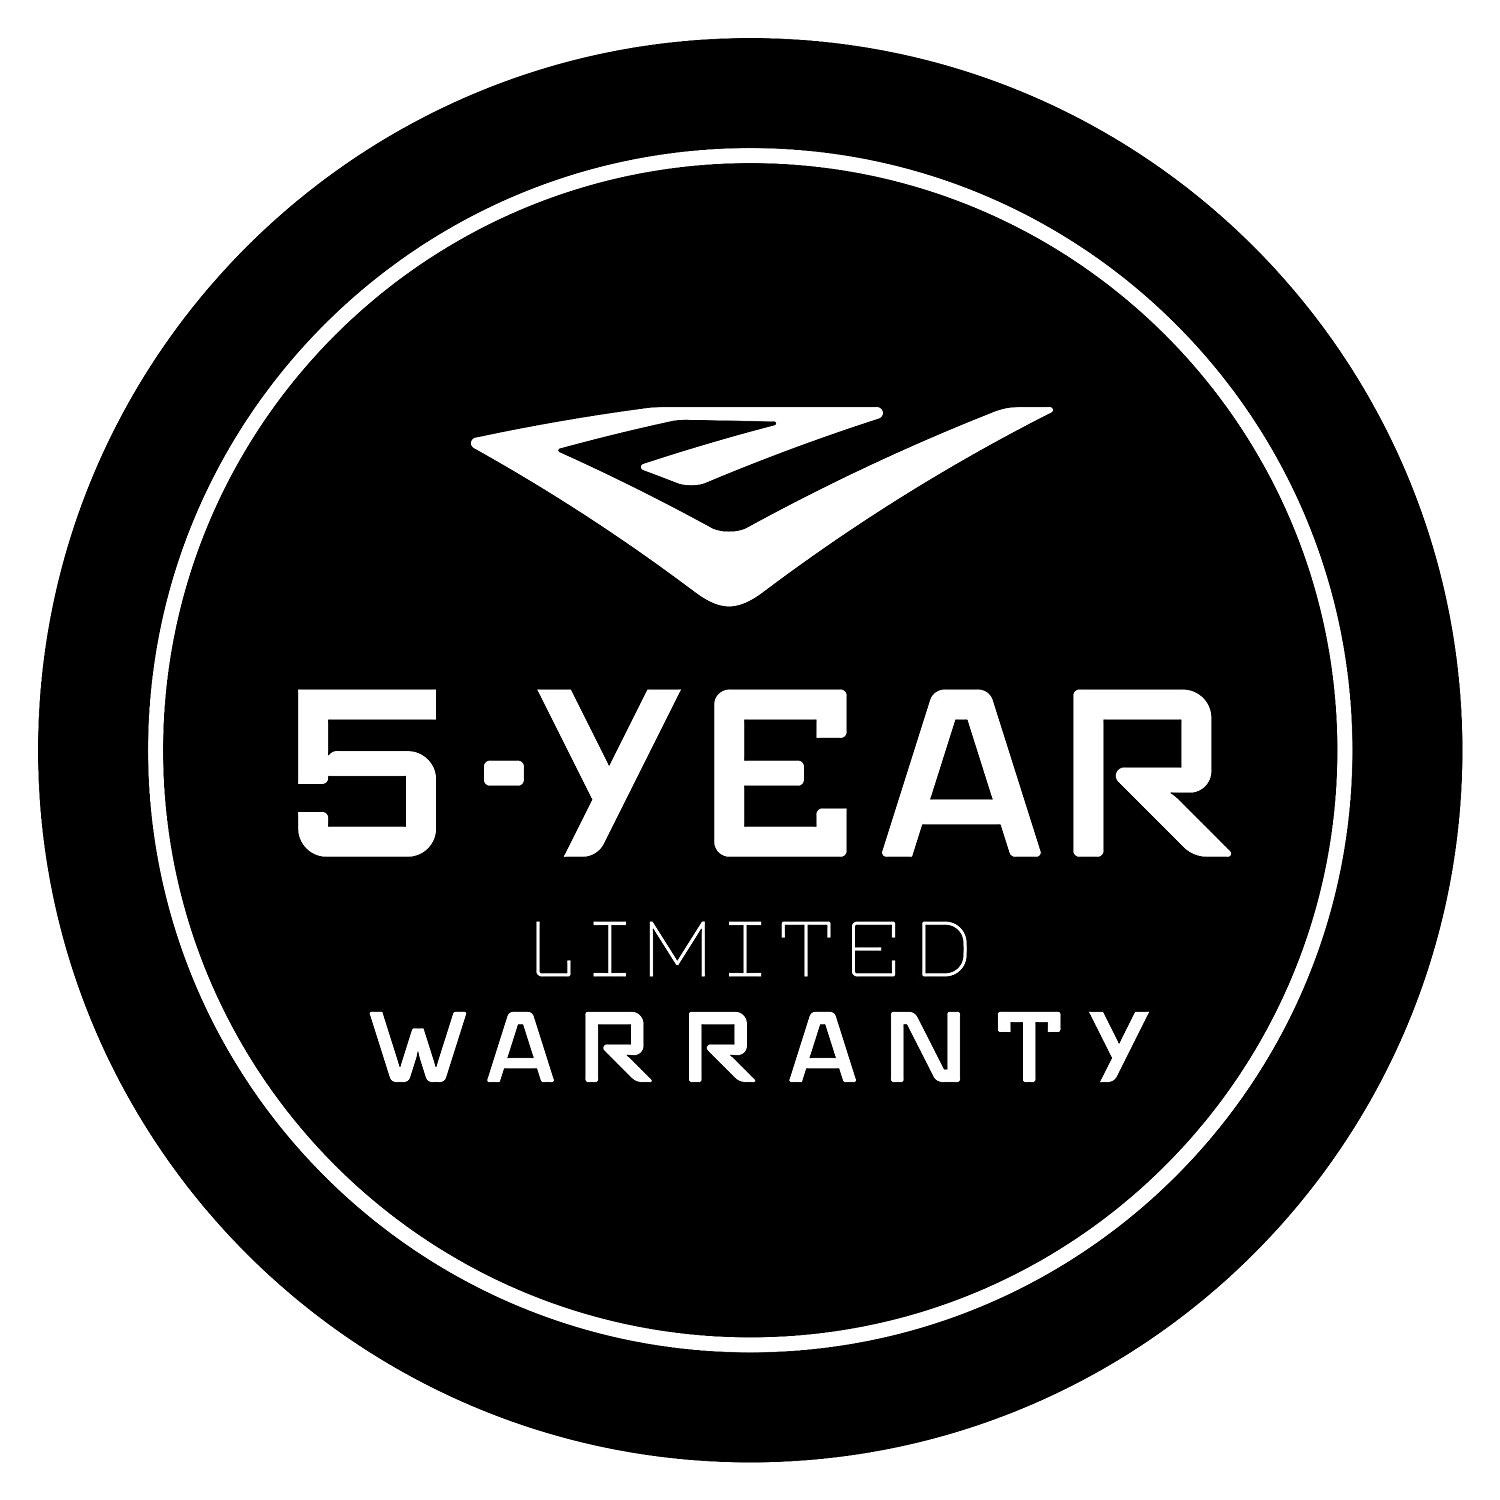 The Earthquake 5-year warranty gives retailers a competitive advantage